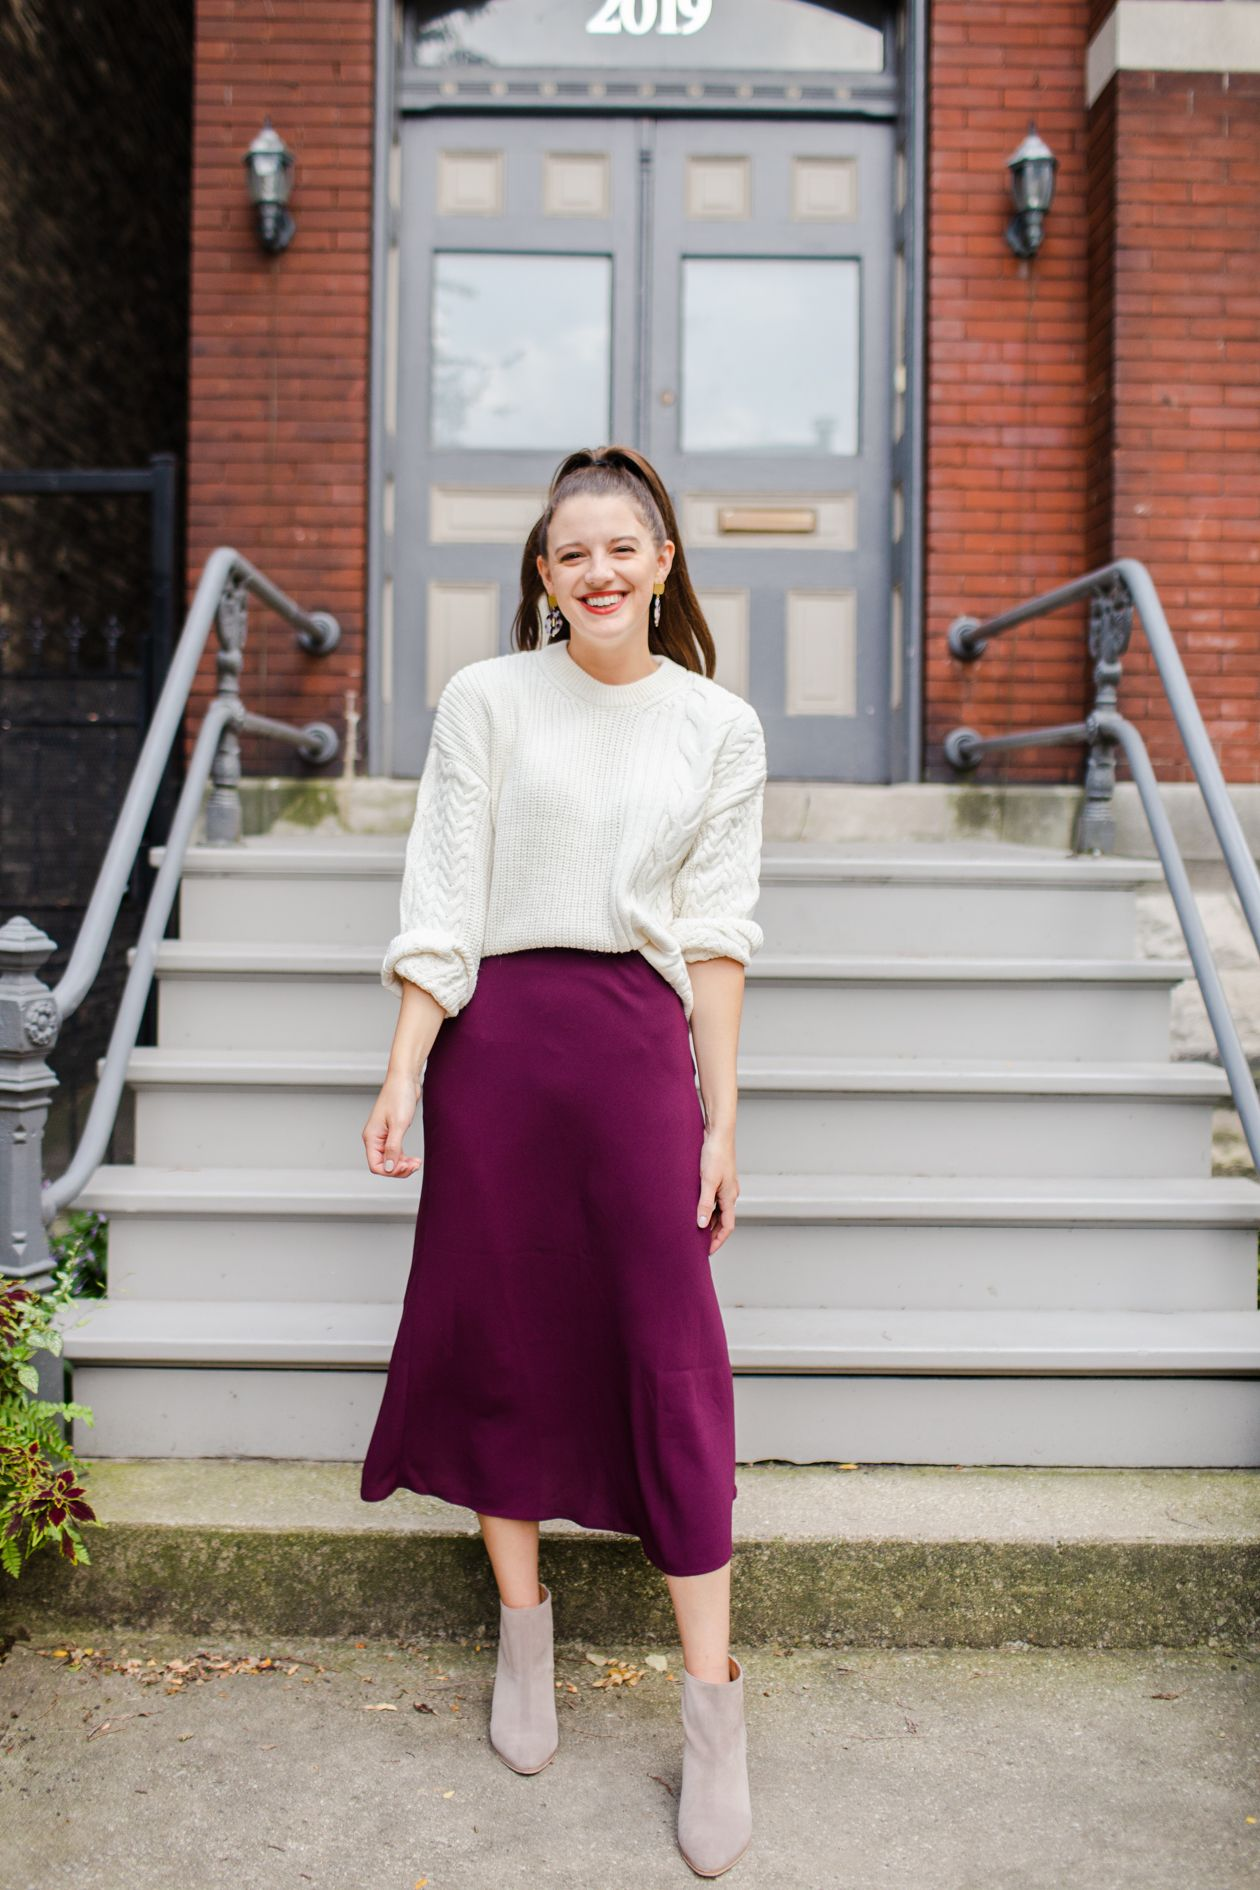 How To Wear A Midi Skirt With Chunky Sweater The Golden Girl Midi Skirt Fashion Pleated Long Skirt [ 1890 x 1260 Pixel ]